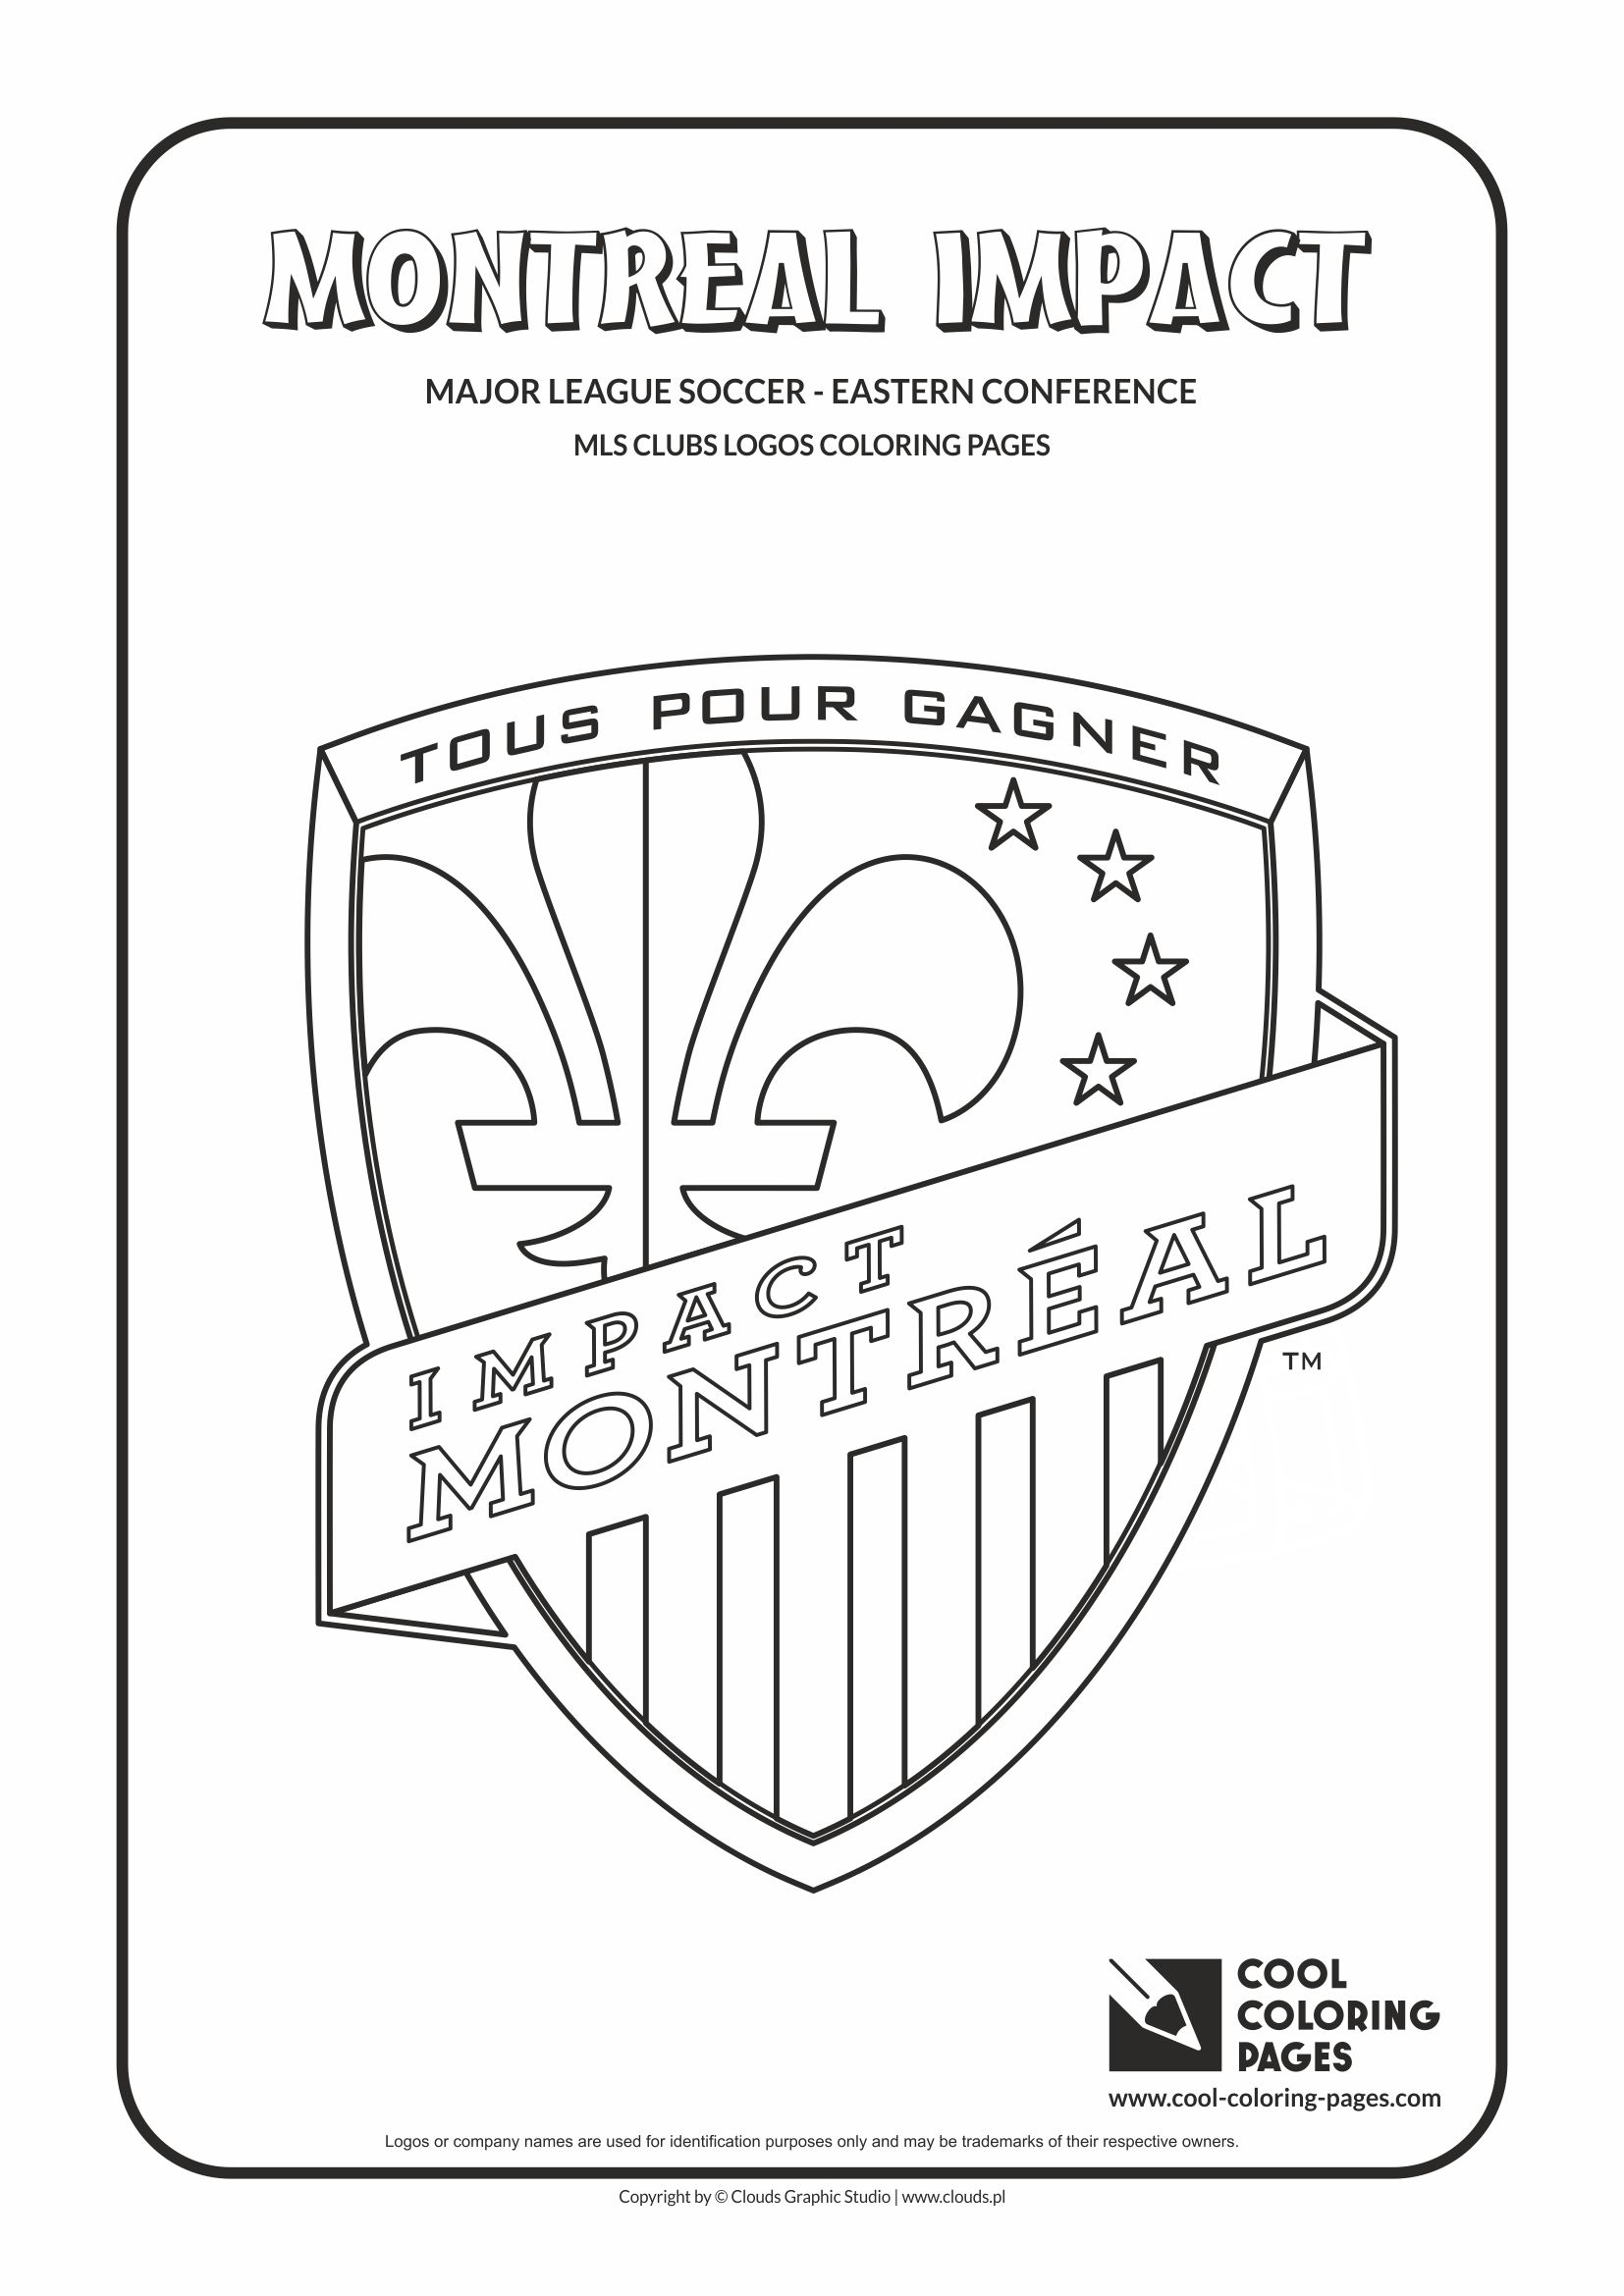 Cool Coloring Pages - Major League Soccer Logos - Eastern Conference / Montreal Impact logo / Coloring page with Montreal Impact logo